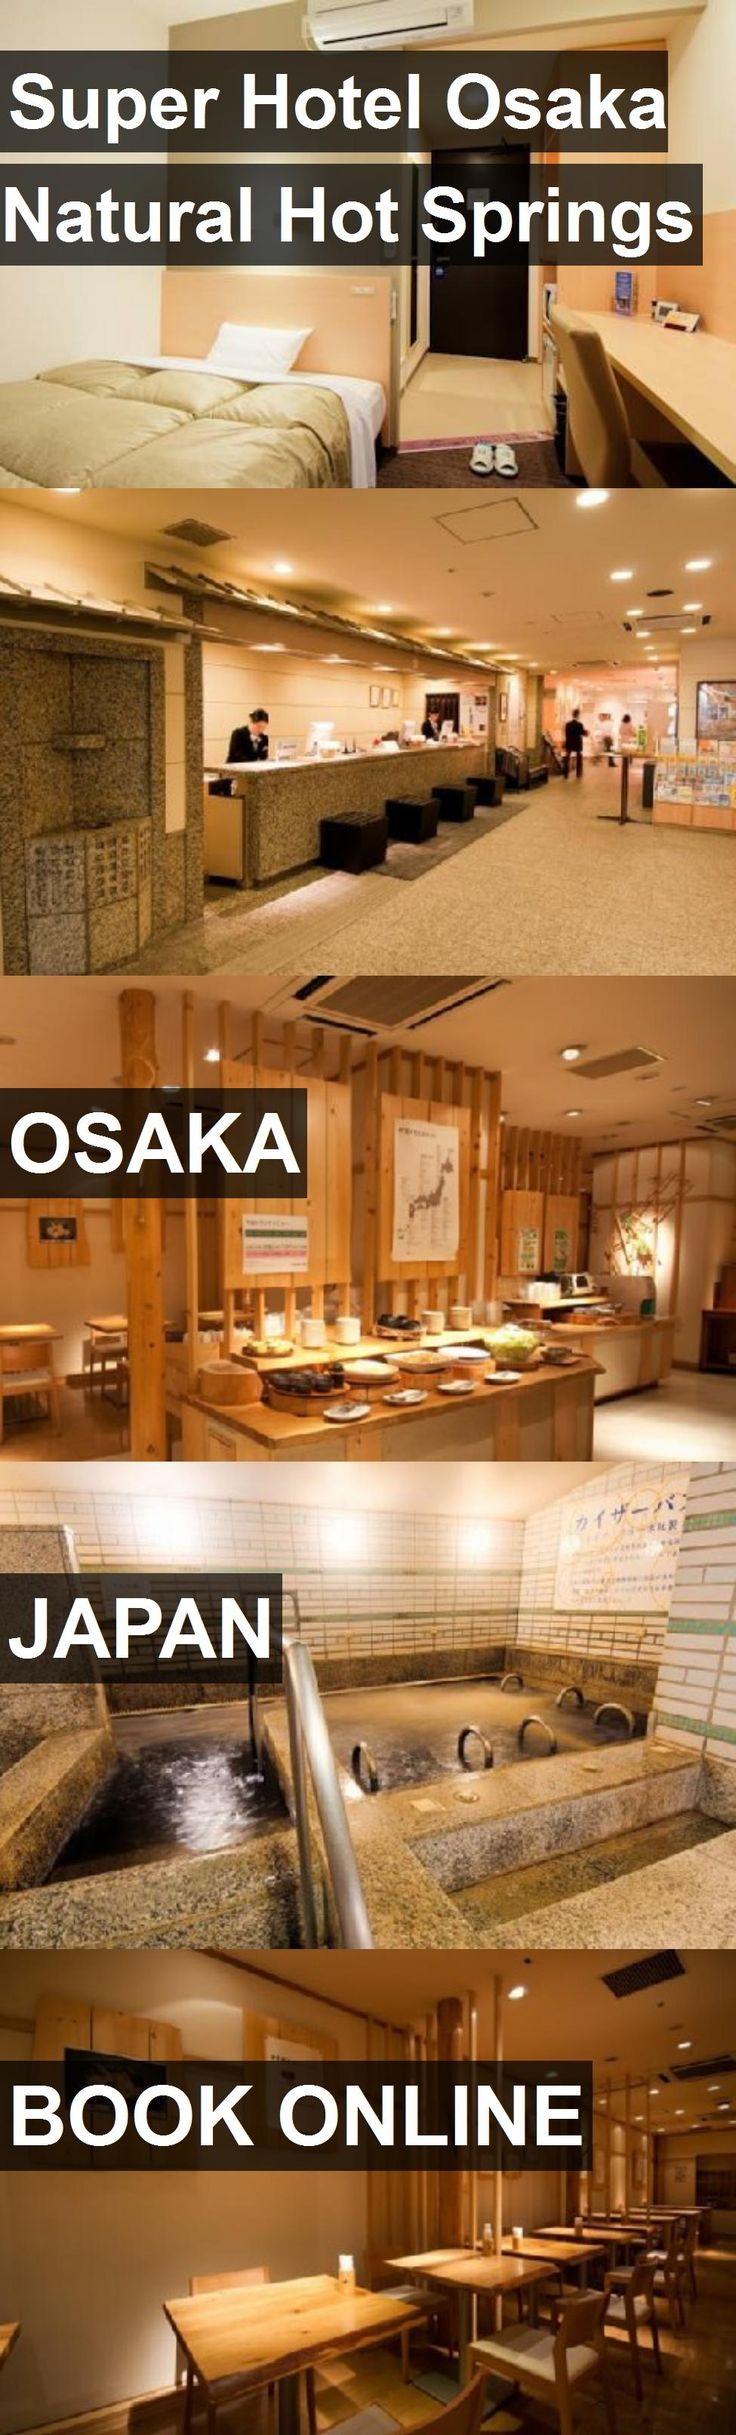 Super Hotel Osaka Natural Hot Springs in Osaka, Japan. For more information, photos, reviews and best prices please follow the link. #Japan #Osaka #travel #vacation #hotel